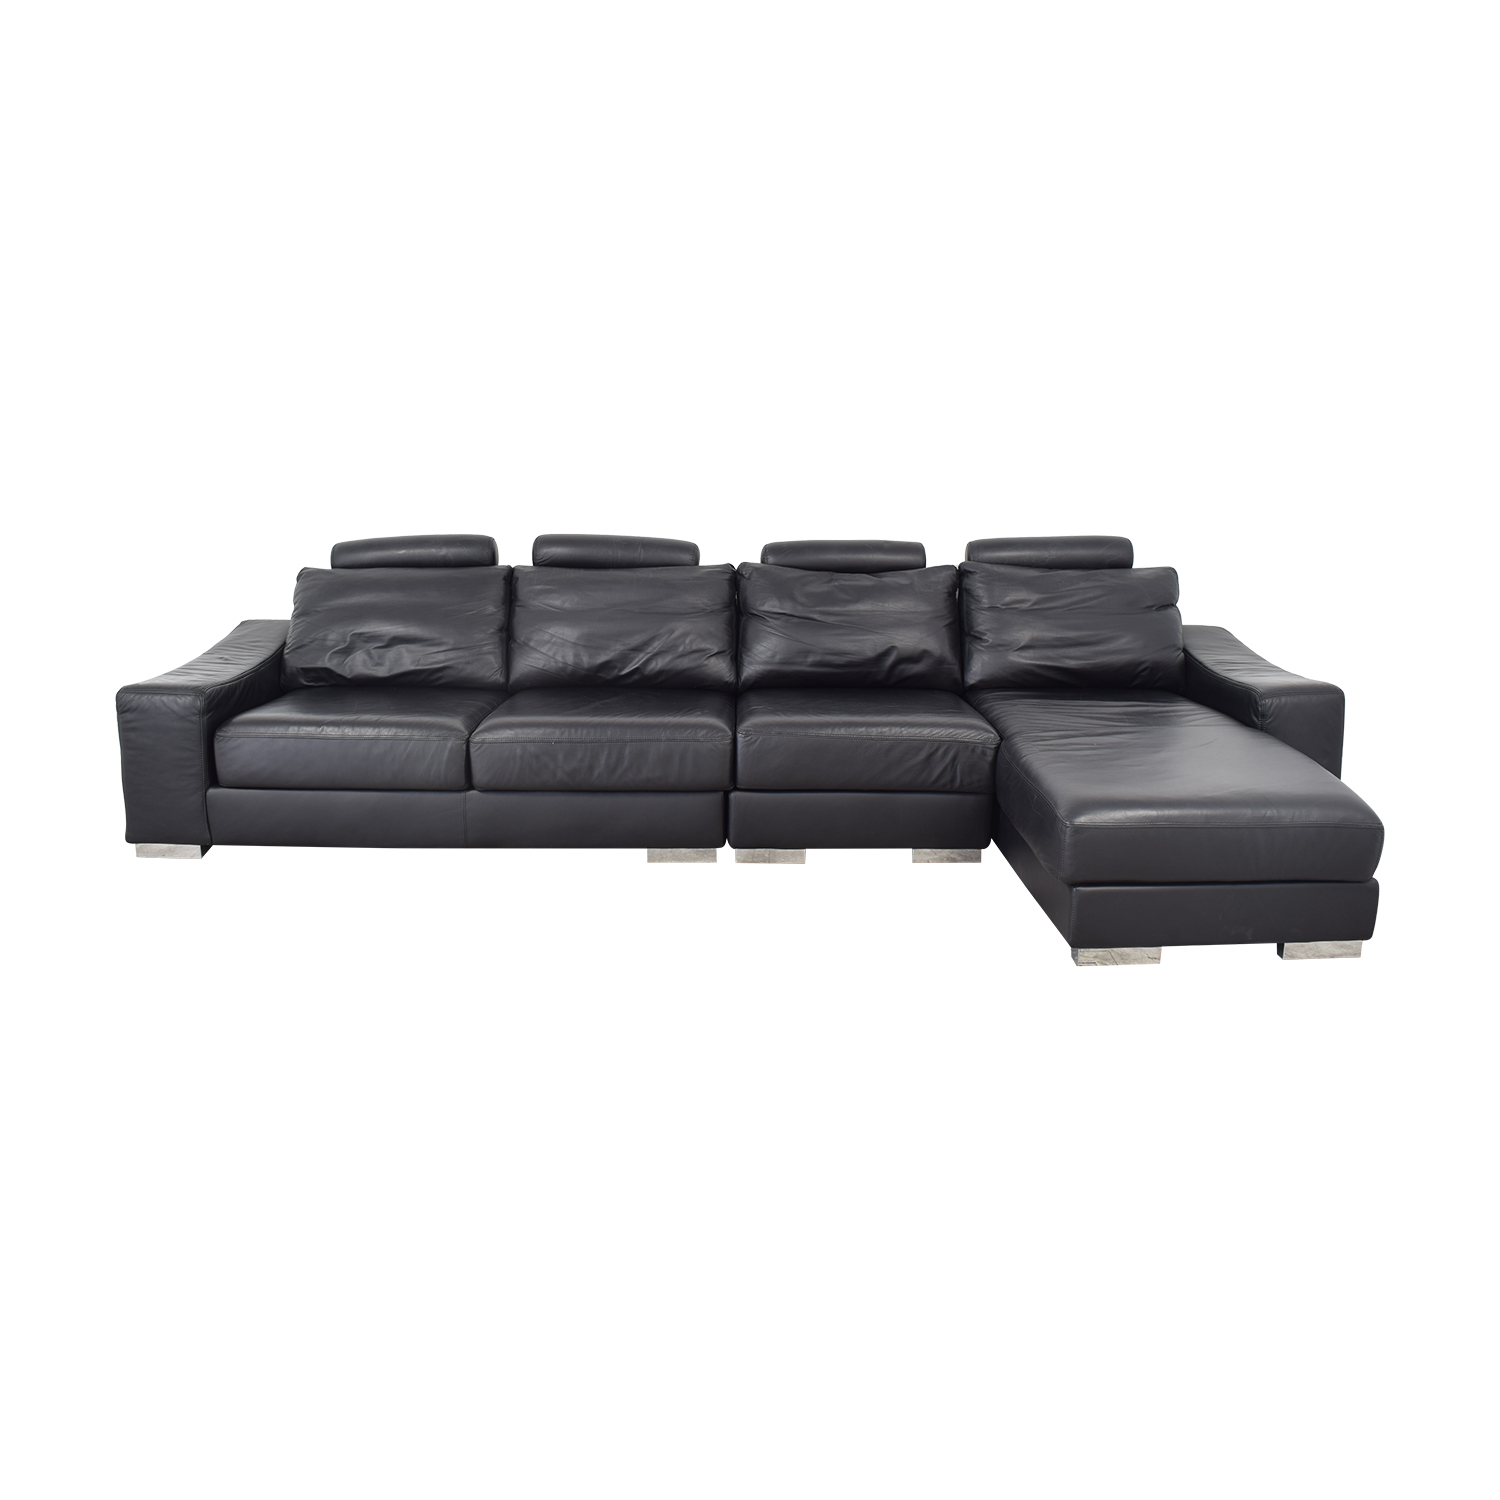 Lind Lind Sectional Sofa with Chaise price